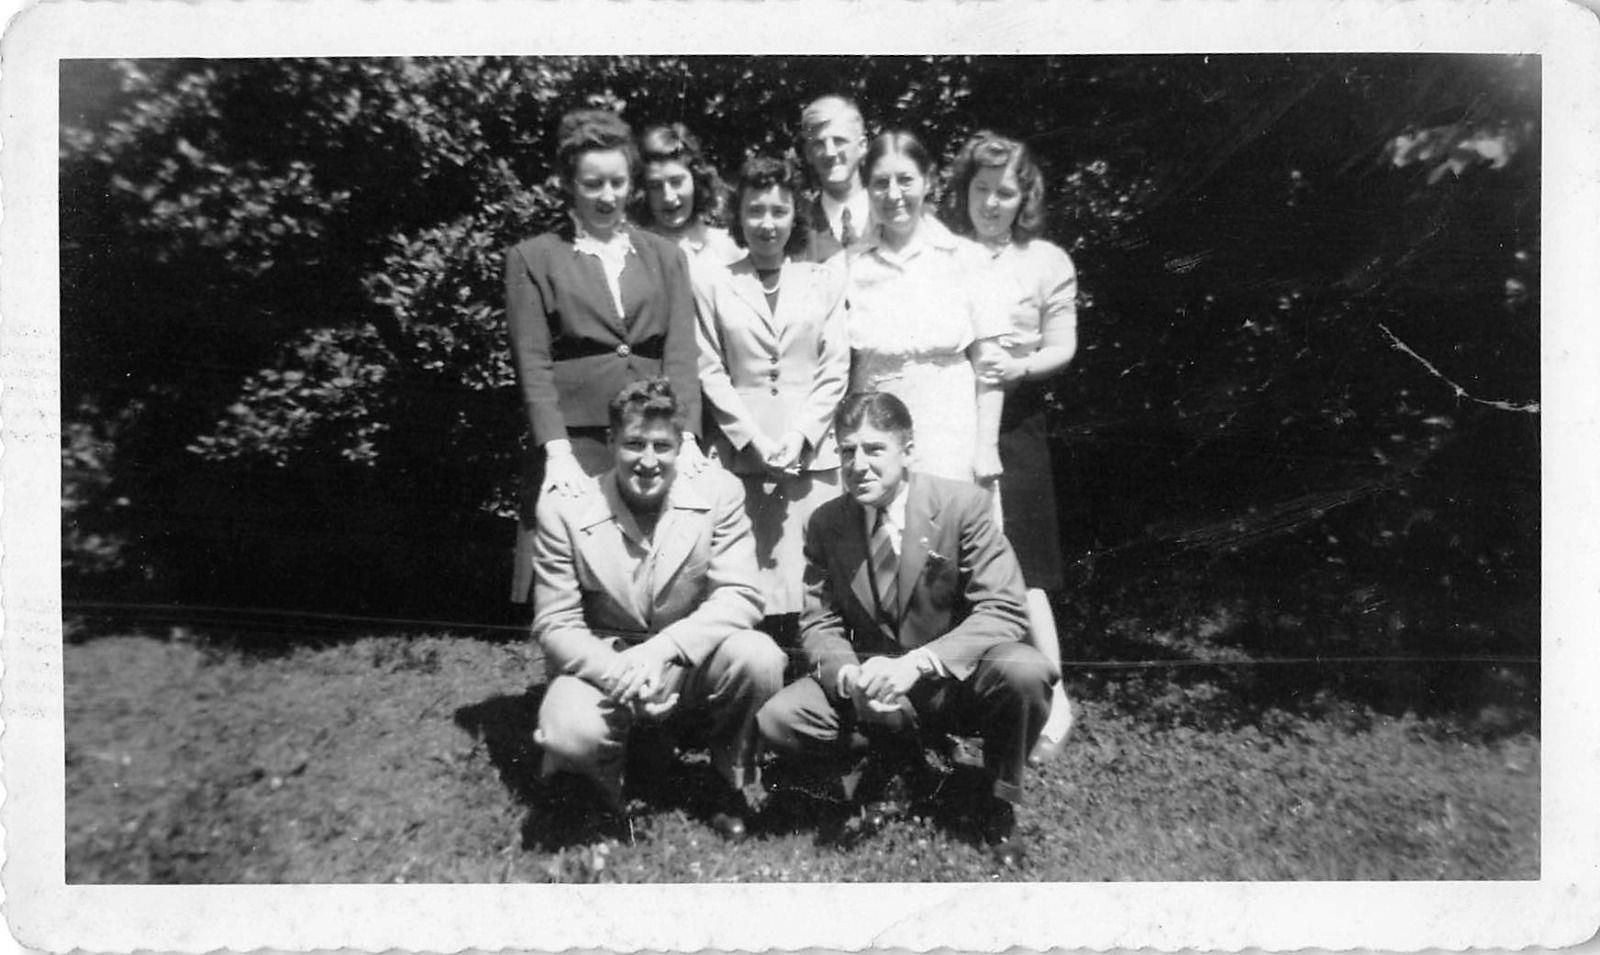 Photograph Snapshot Vintage Black And White Family Suit Dress Yard